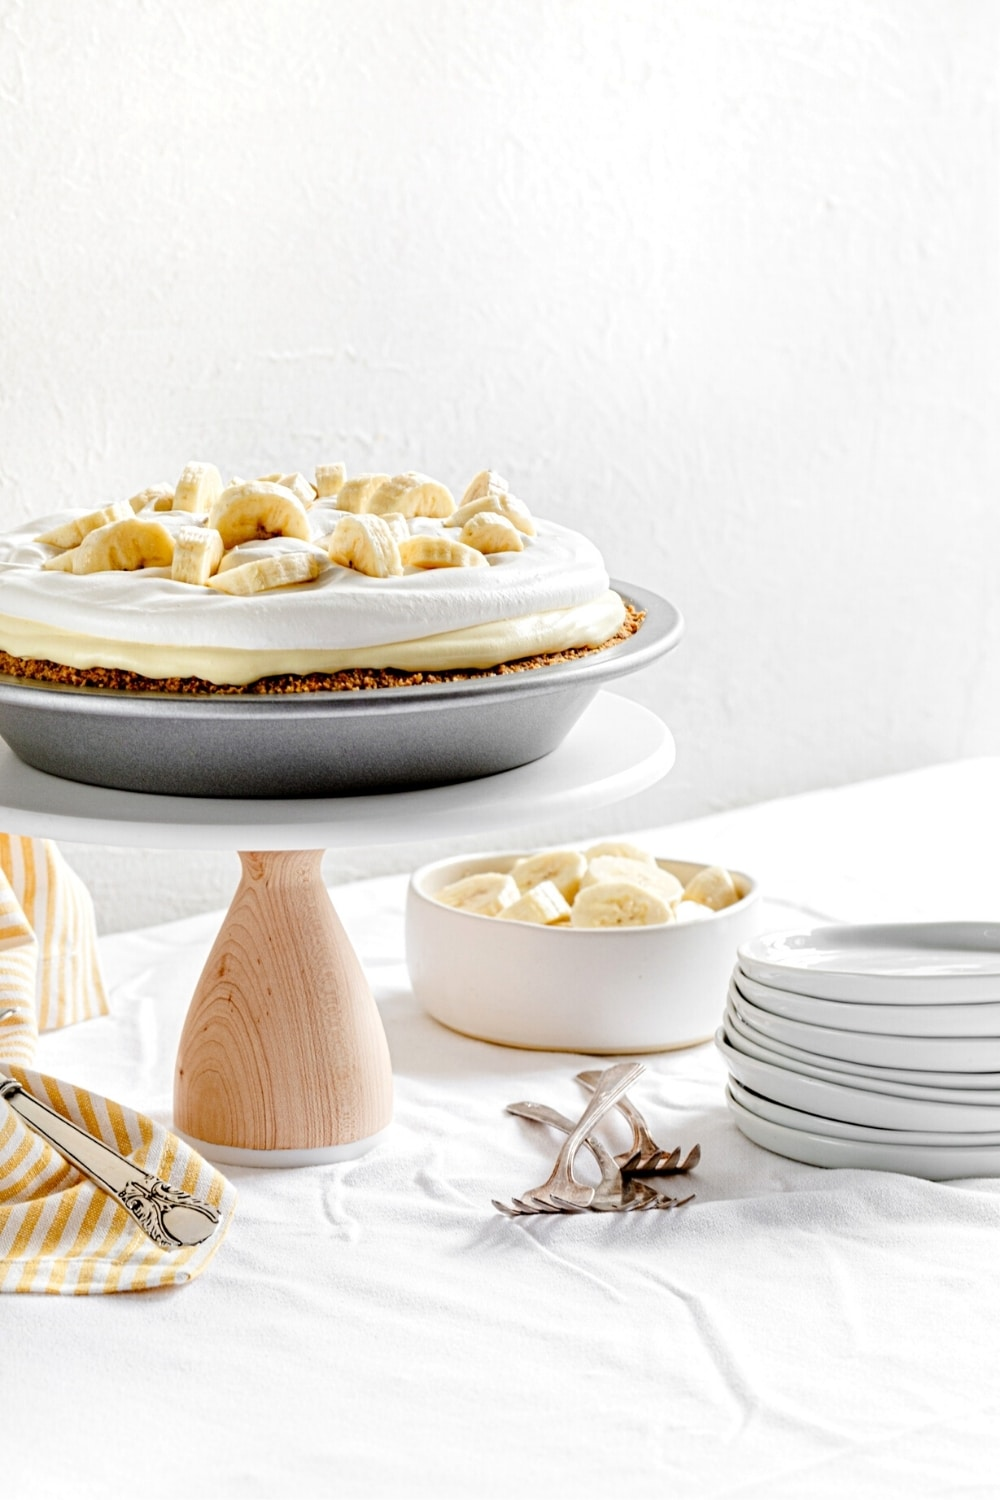 Banana pudding pie (AKA: Banana cream pie) on a dessert stand with plates and forks.